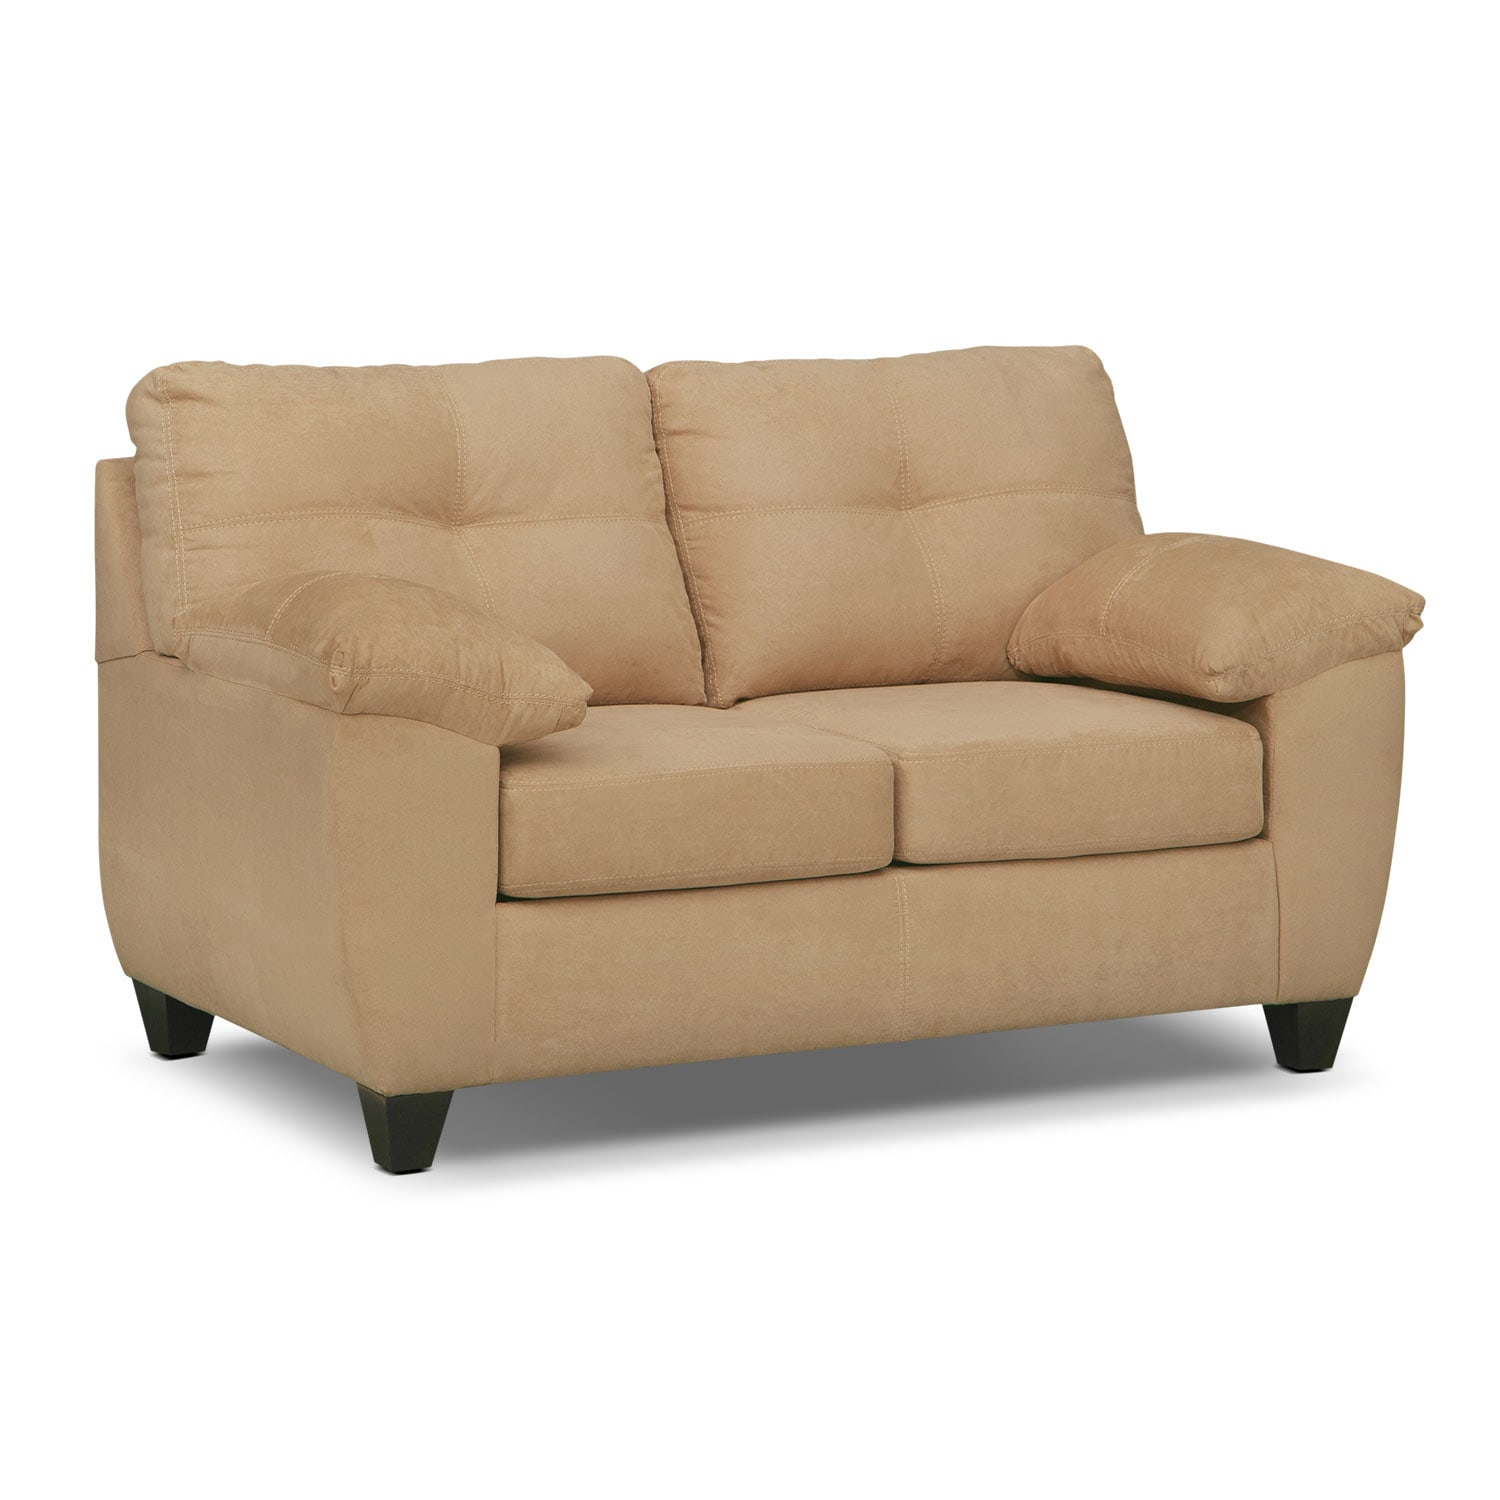 Living Room Furniture - Rialto Loveseat - Camel